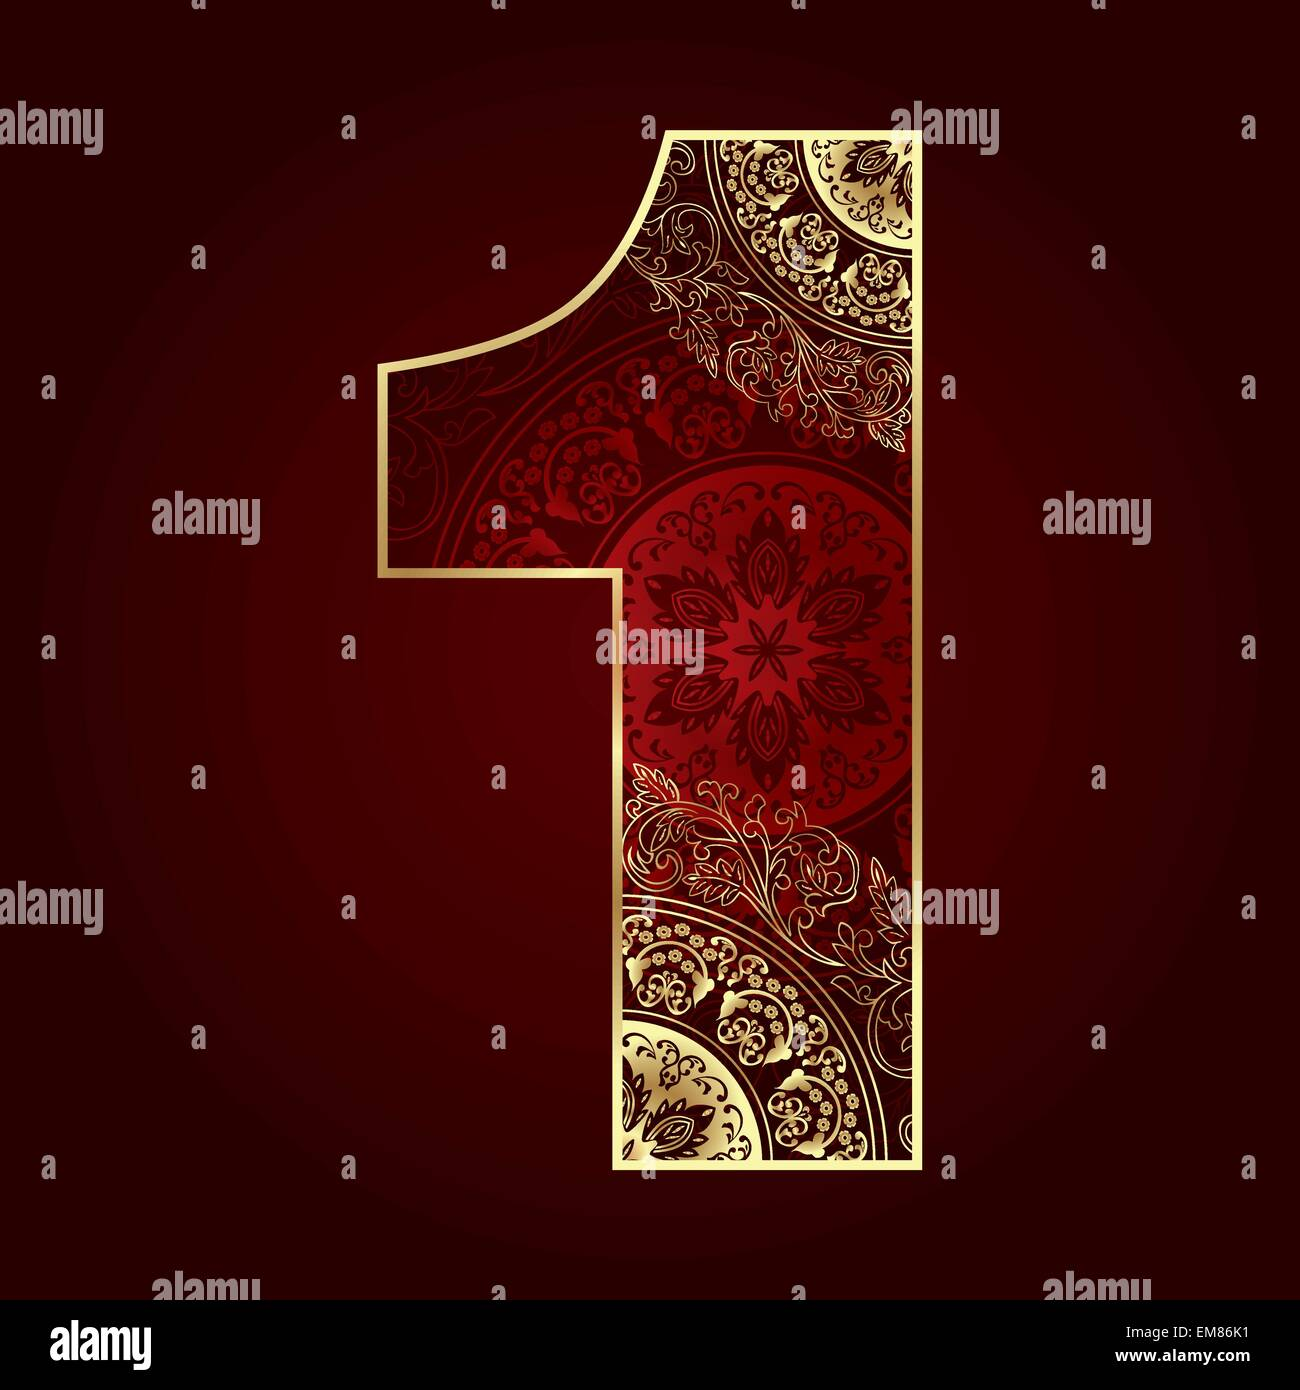 Vintage number 1 with floral swirls - Stock Image